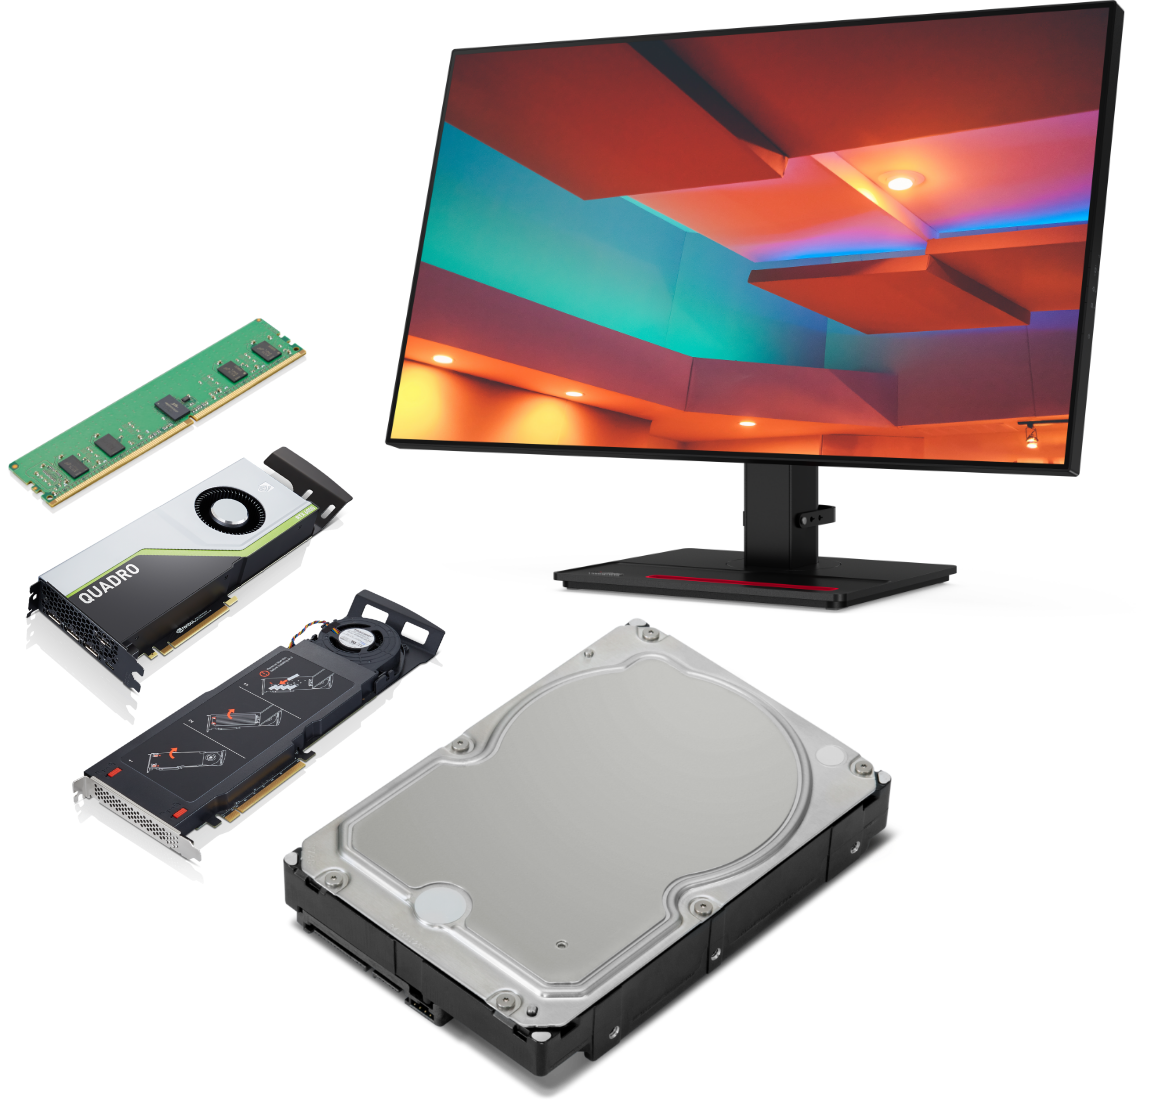 5 accessories compatible with the Lenovo ThinkStation P620 tower workstation including monitor, graphics card.